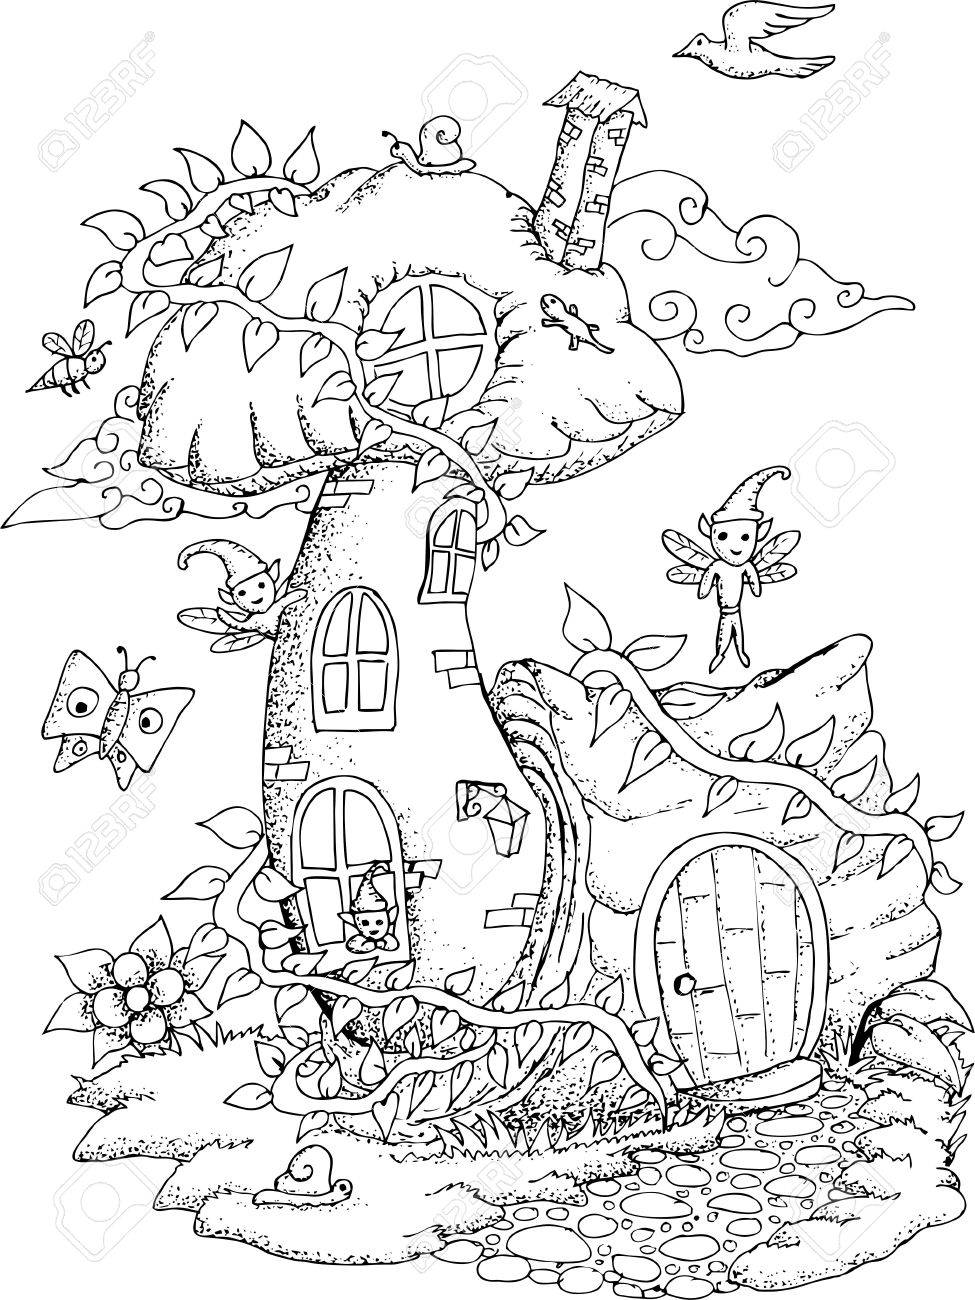 975x1300 Black And White Illustration Of A Fairy House With Details